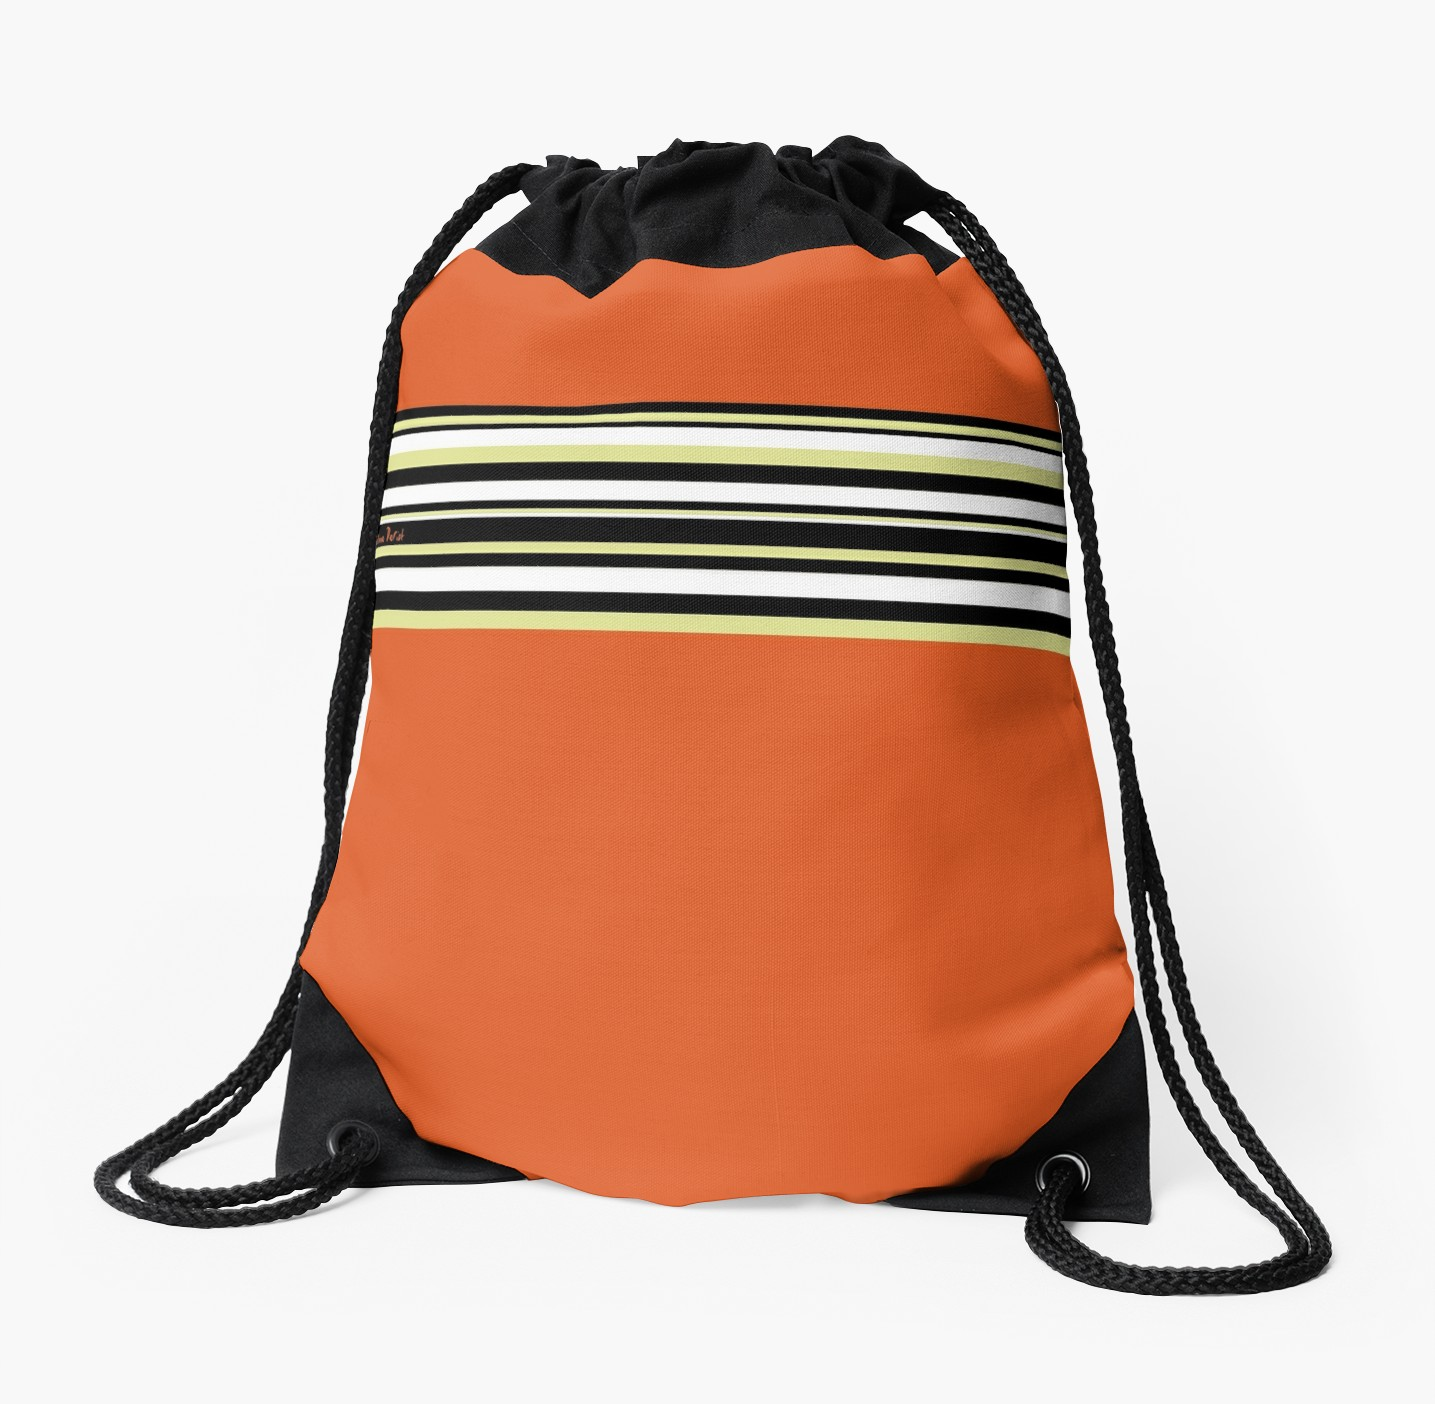 Sac_à_dos_HRMS_20180401_orange_rayures.